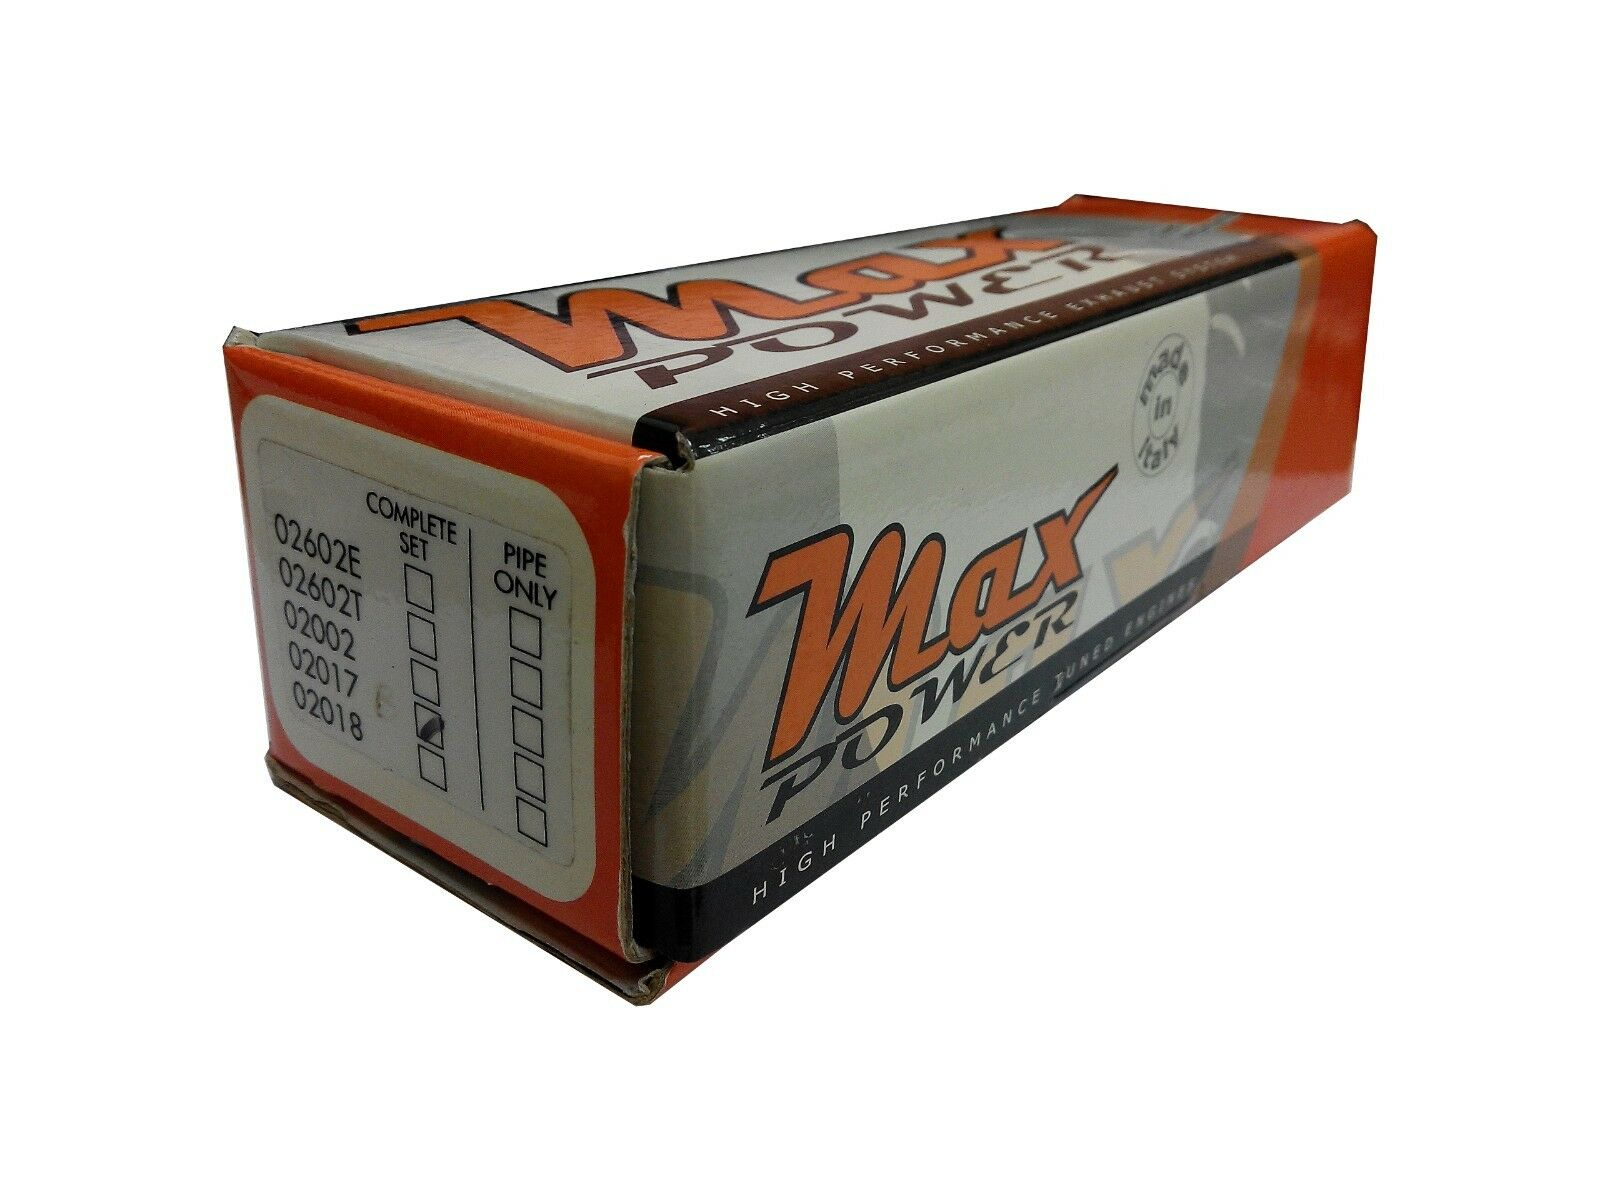 Max Power 1 8 OFFROAD PIPE SET, 02017B